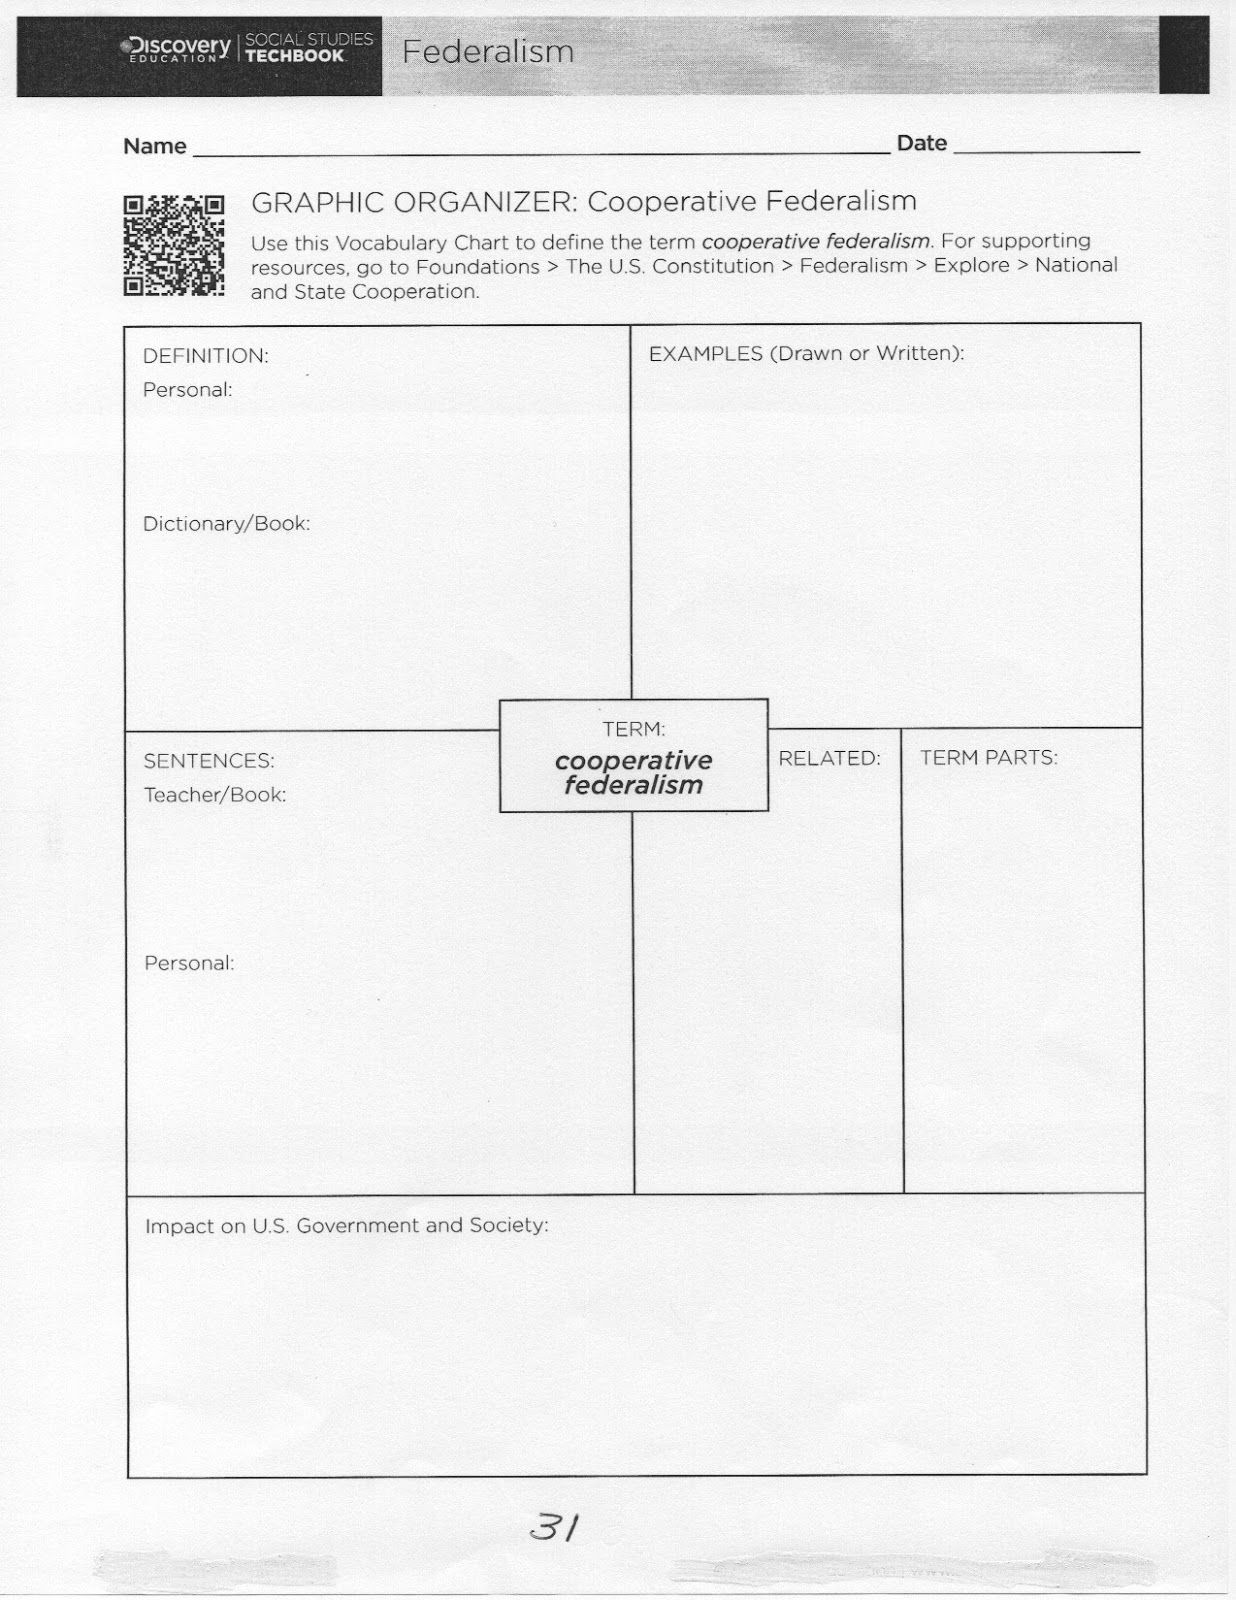 Coach Green S Class Unit 5 Worksheets Federalism